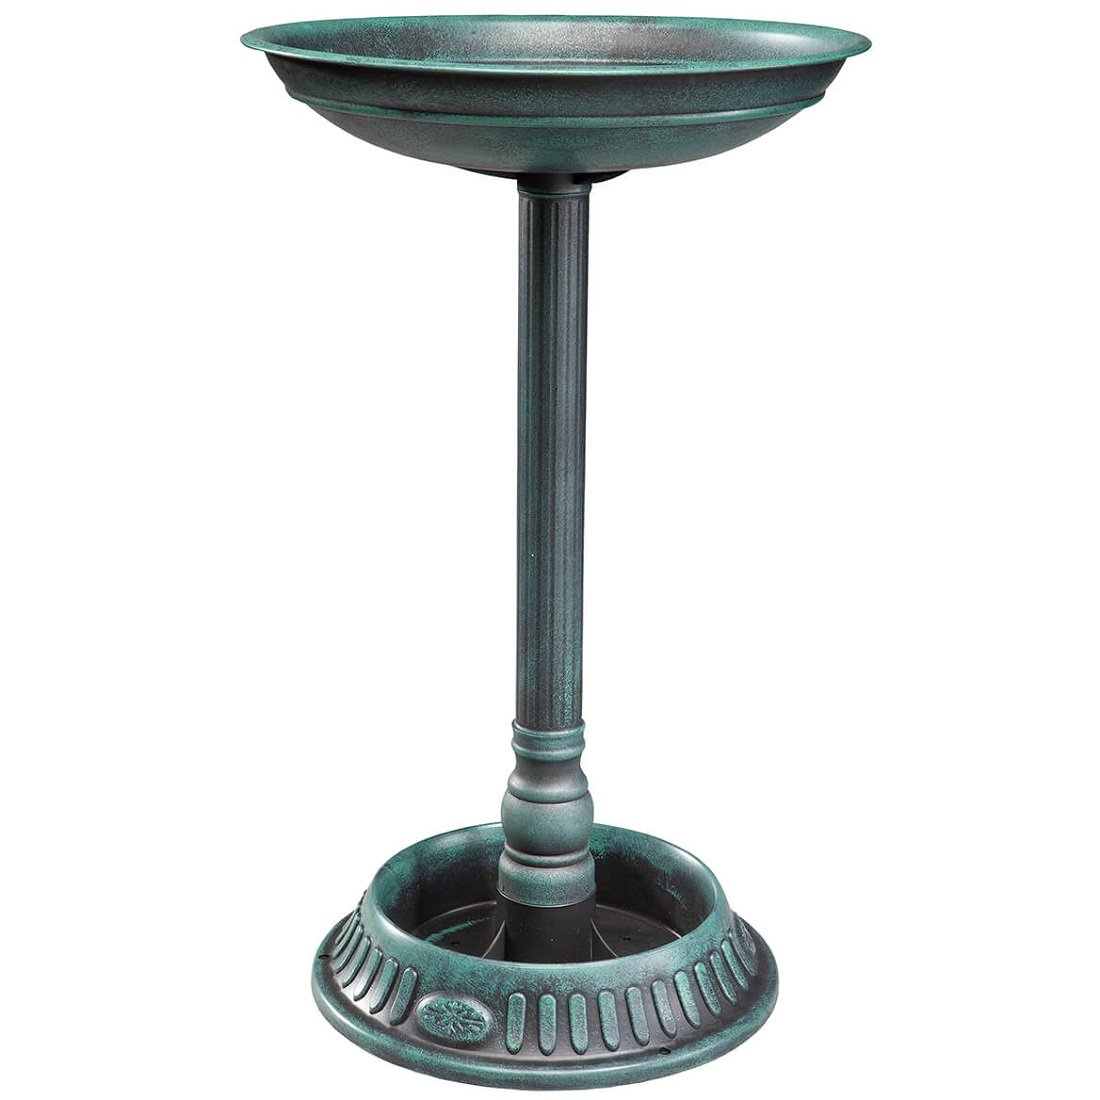 MS HOME Multi-Purpose Neoclassic Plastic Birdbath With Planter in Green/Black Finish - Birdbath basin: 15'' Dia - Planter: 10'' Dia - 25'' H